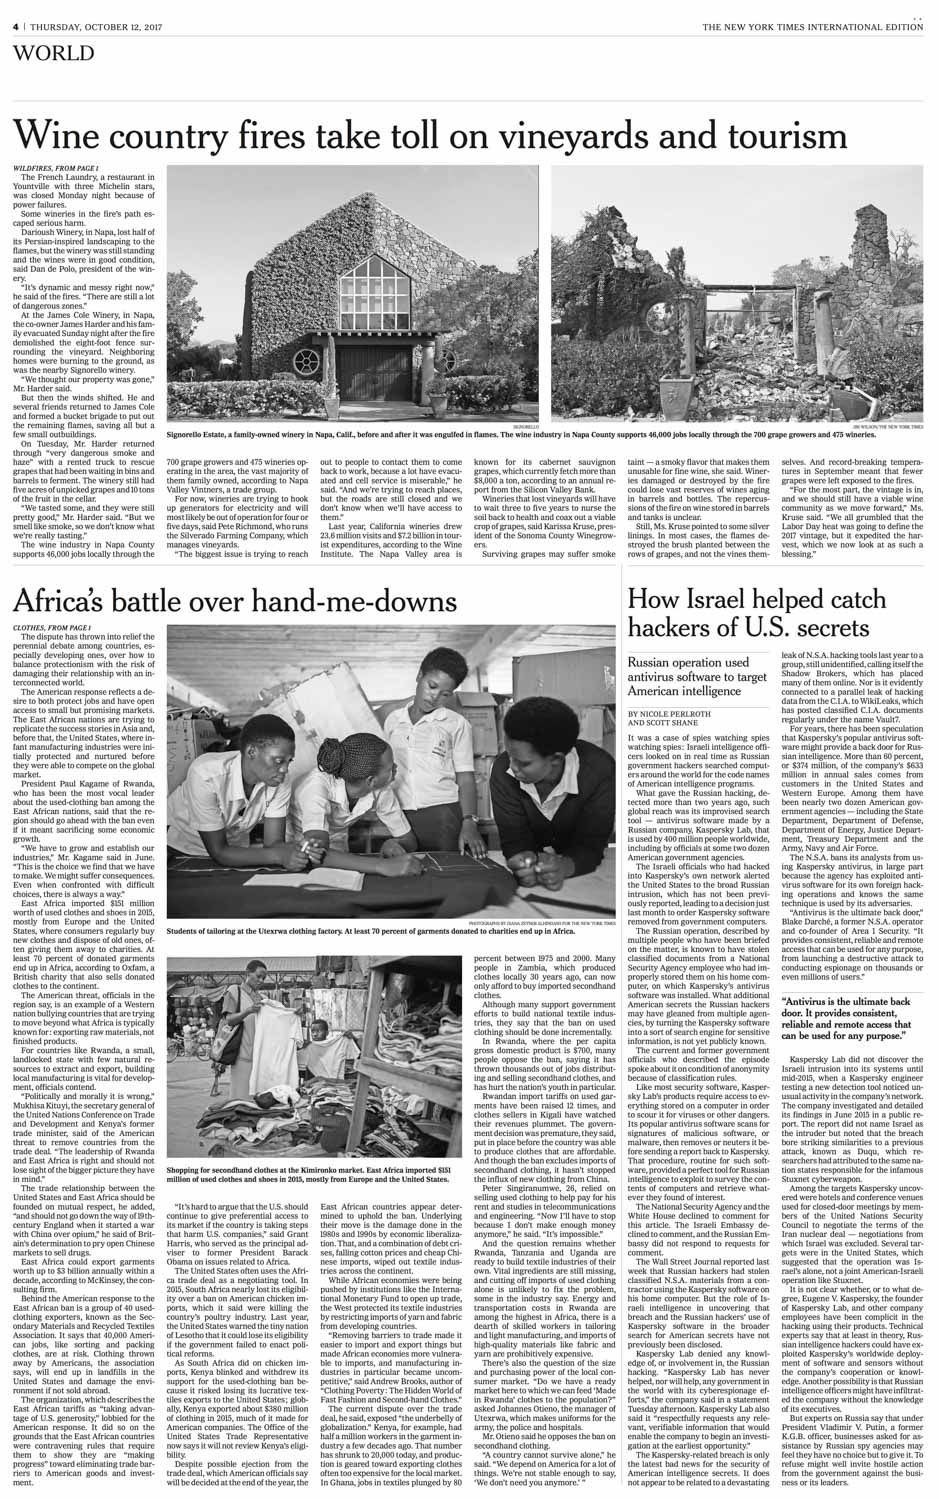 CLICK on title for online version     The hand-me-down battle  | The New York Times, International edition, pages A1 and A4, Oct 12, 2017